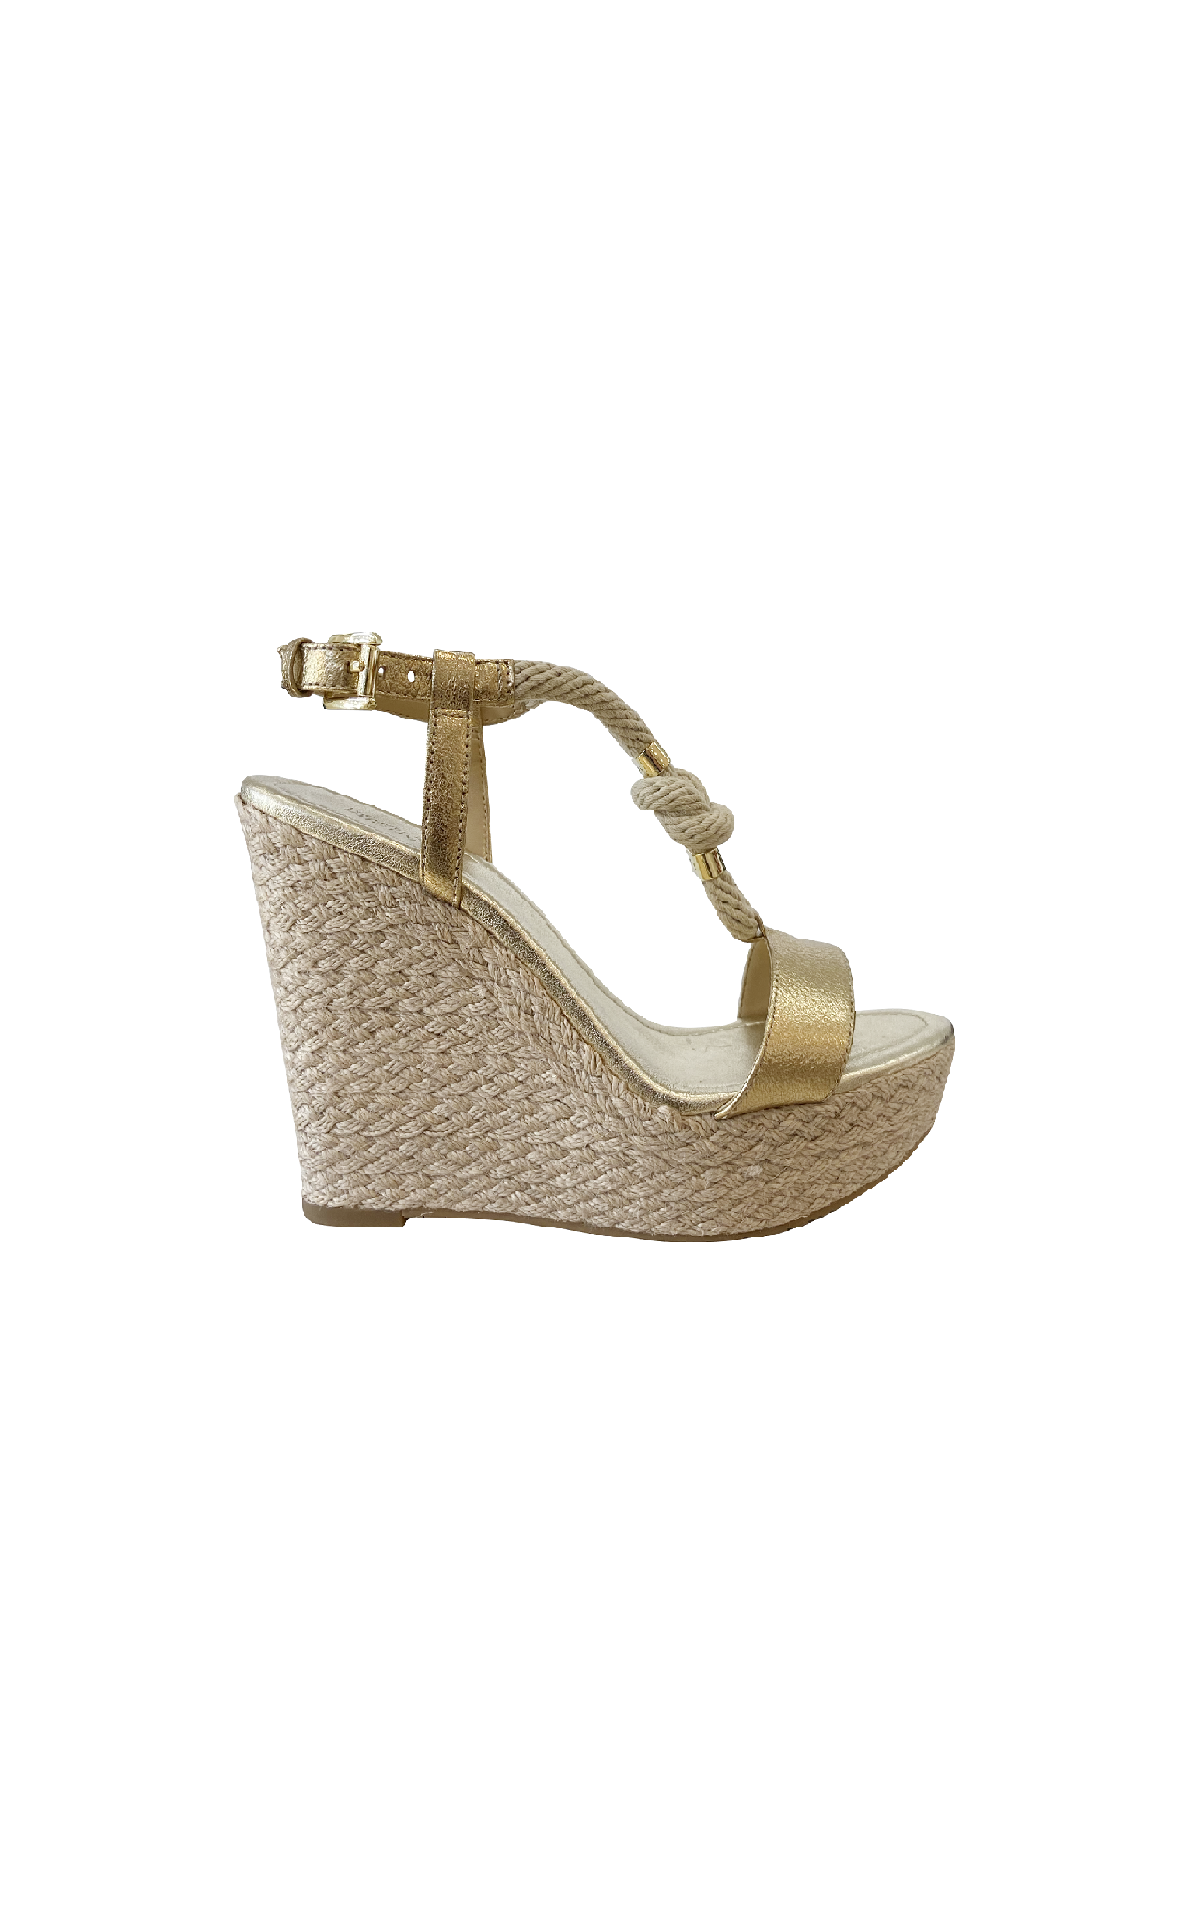 Gold sandal with platform Michael Kors